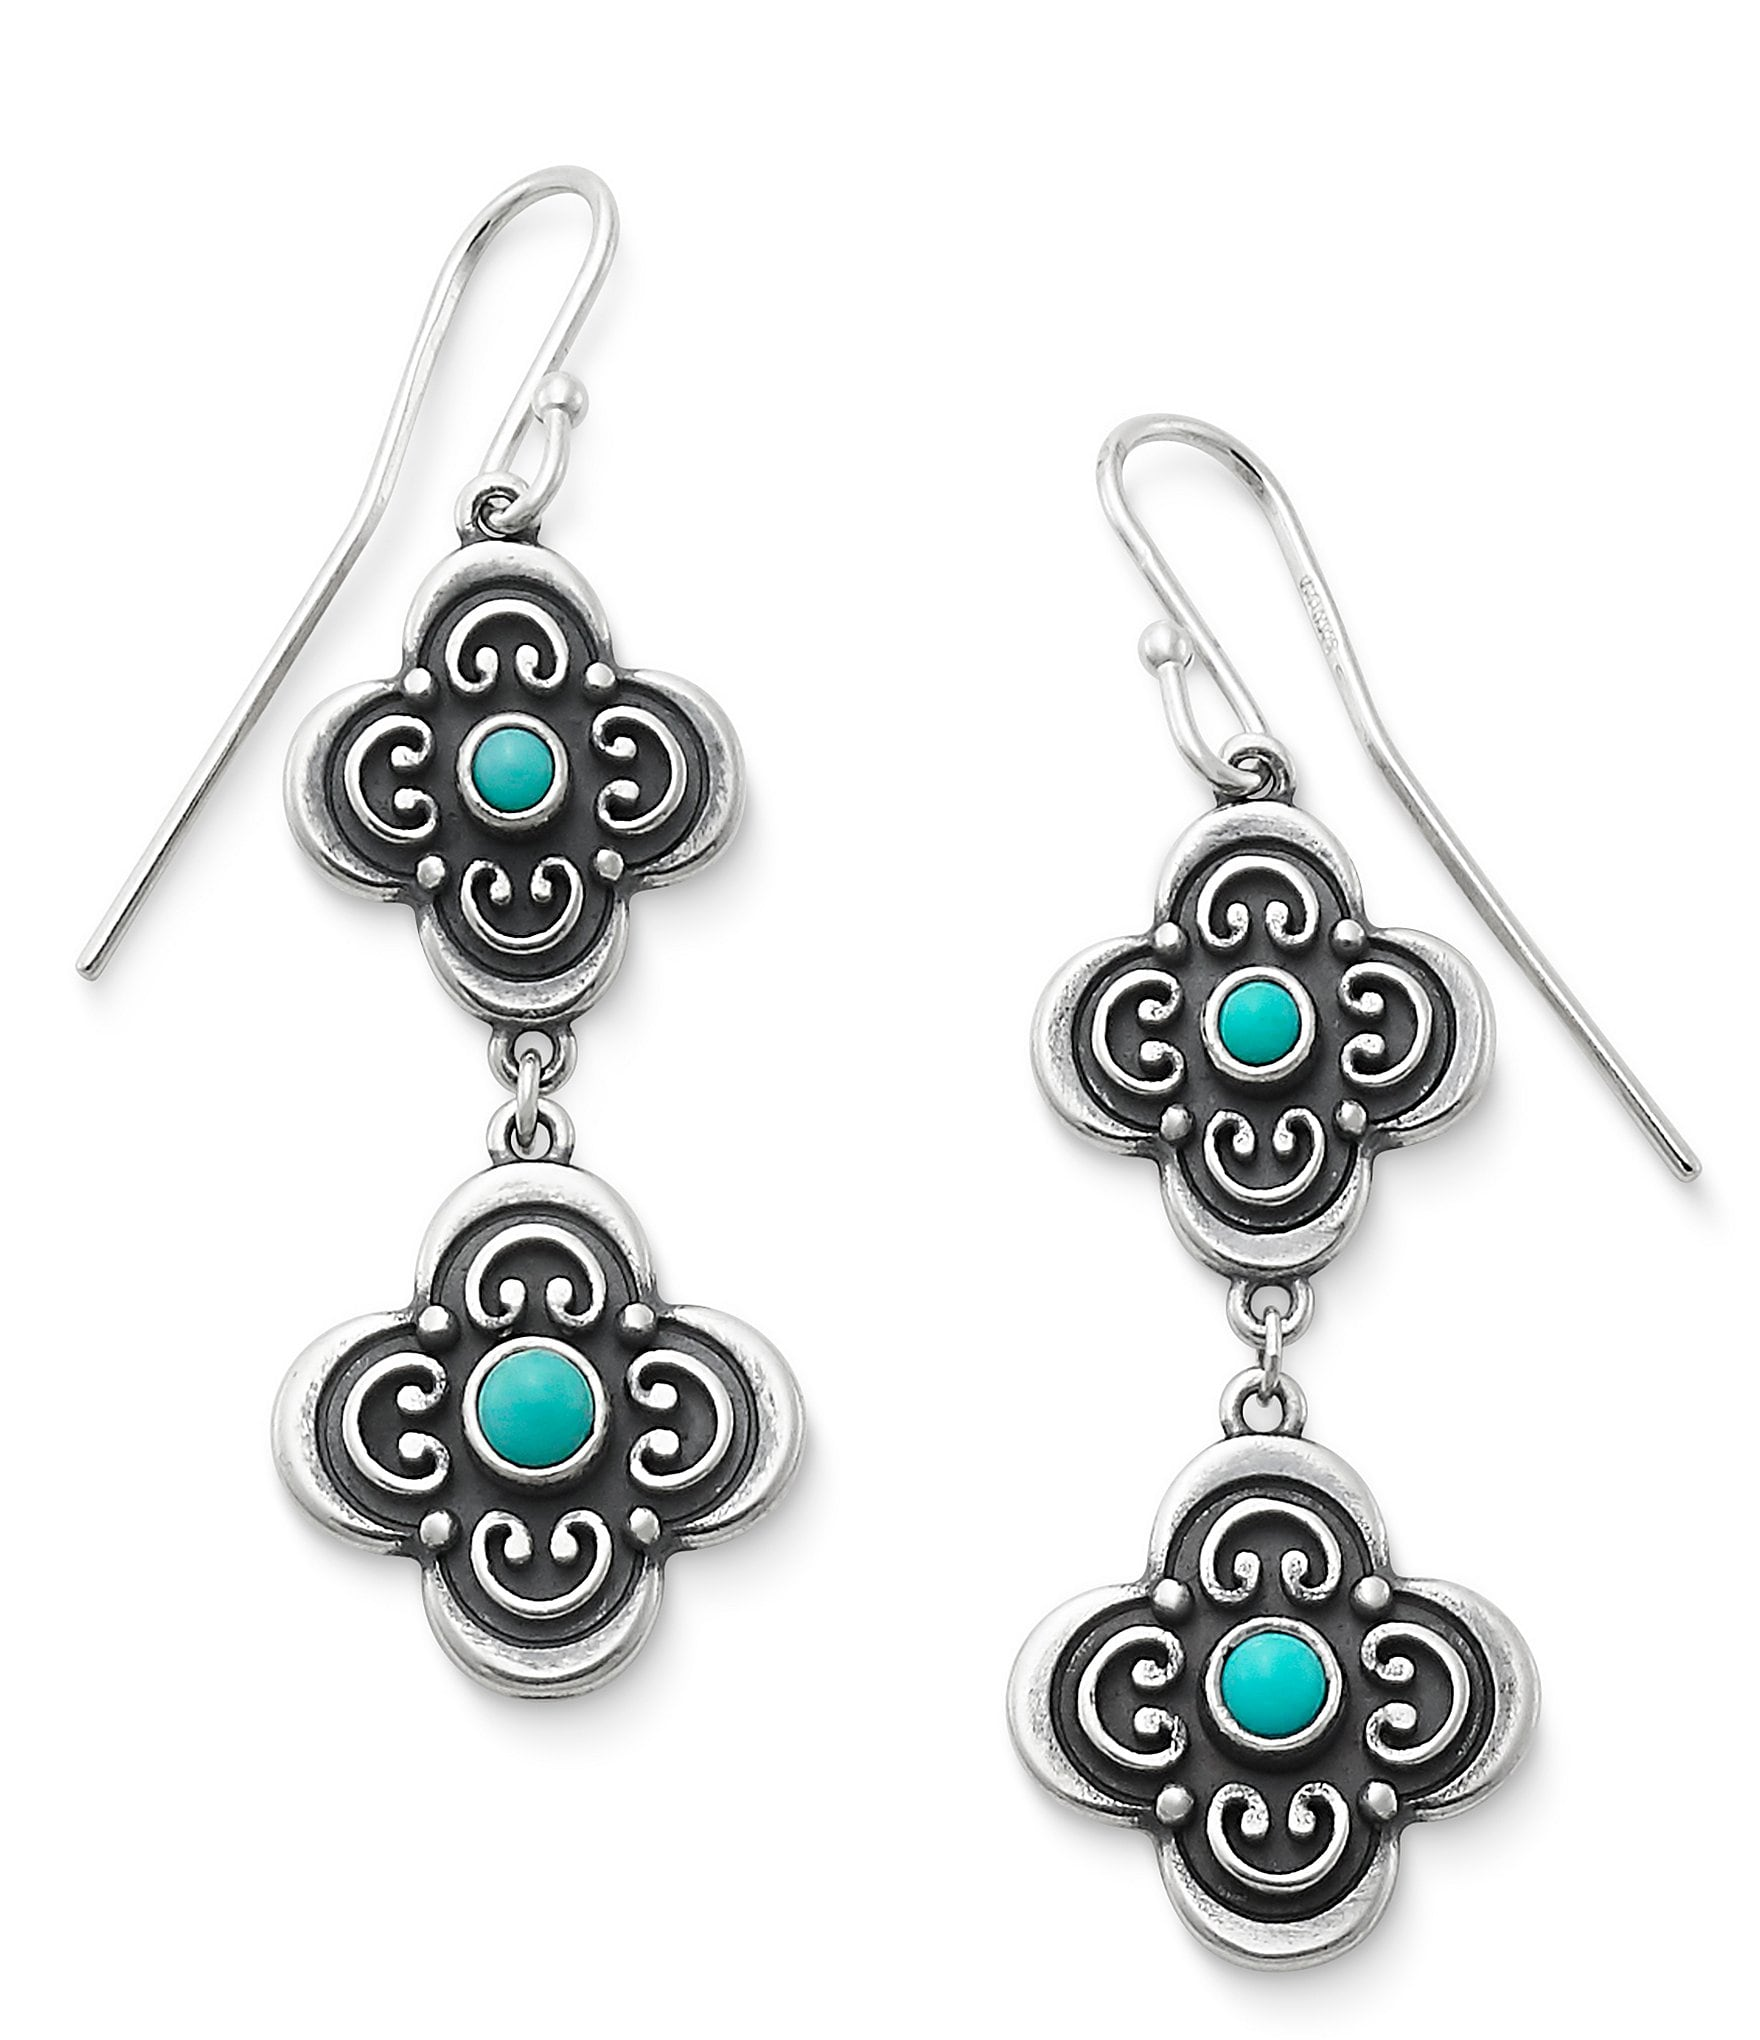 sterling earrings bling jewelry studs silver earring turquoise bali stud oval hsh